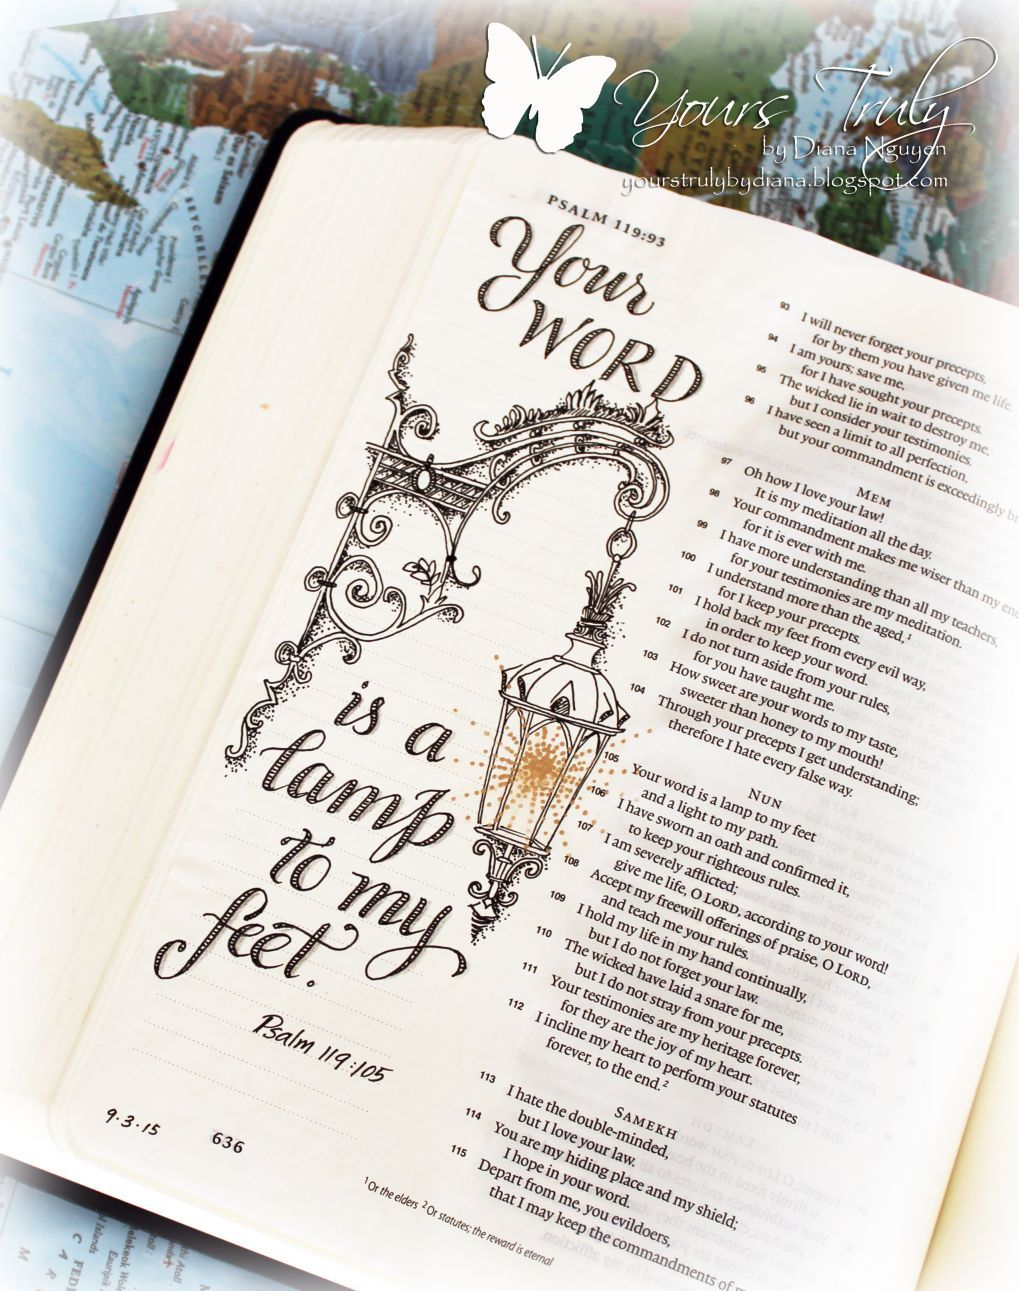 Diana Nguyen, Bible Journaling, Illustrated Faith, Psalms ...